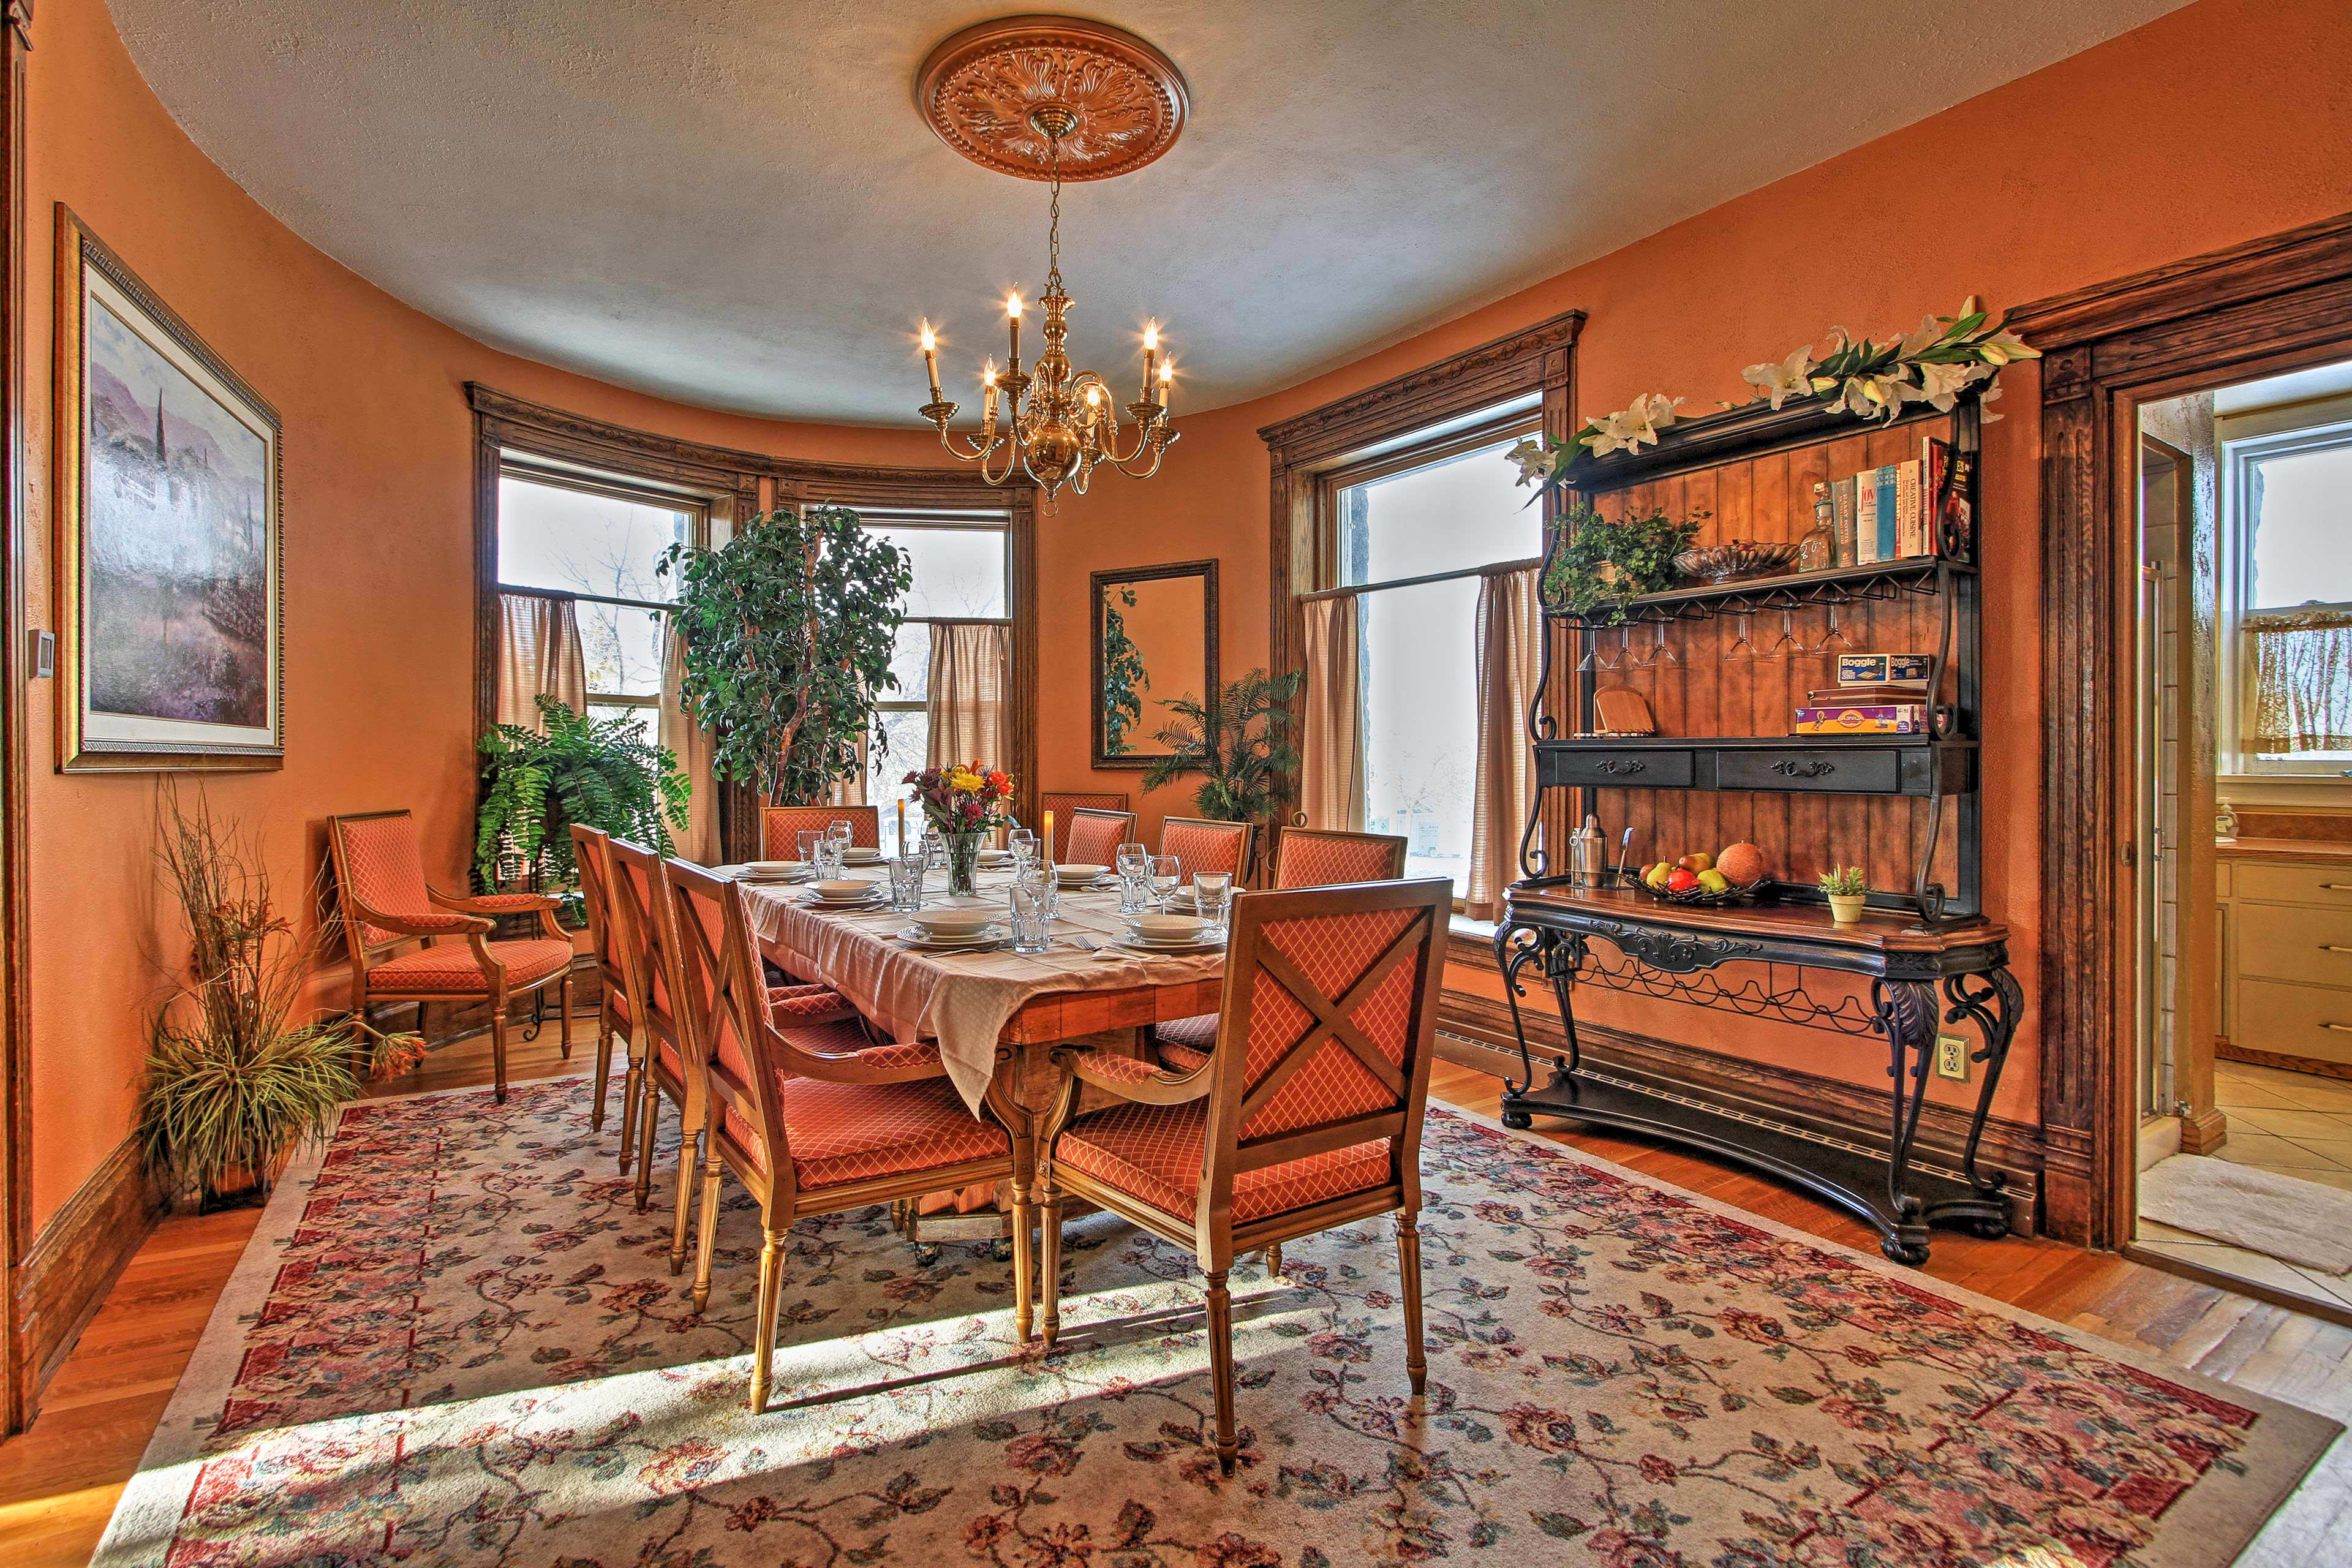 The dining room's elegant decor & furnishings make it perfect for any occasion.